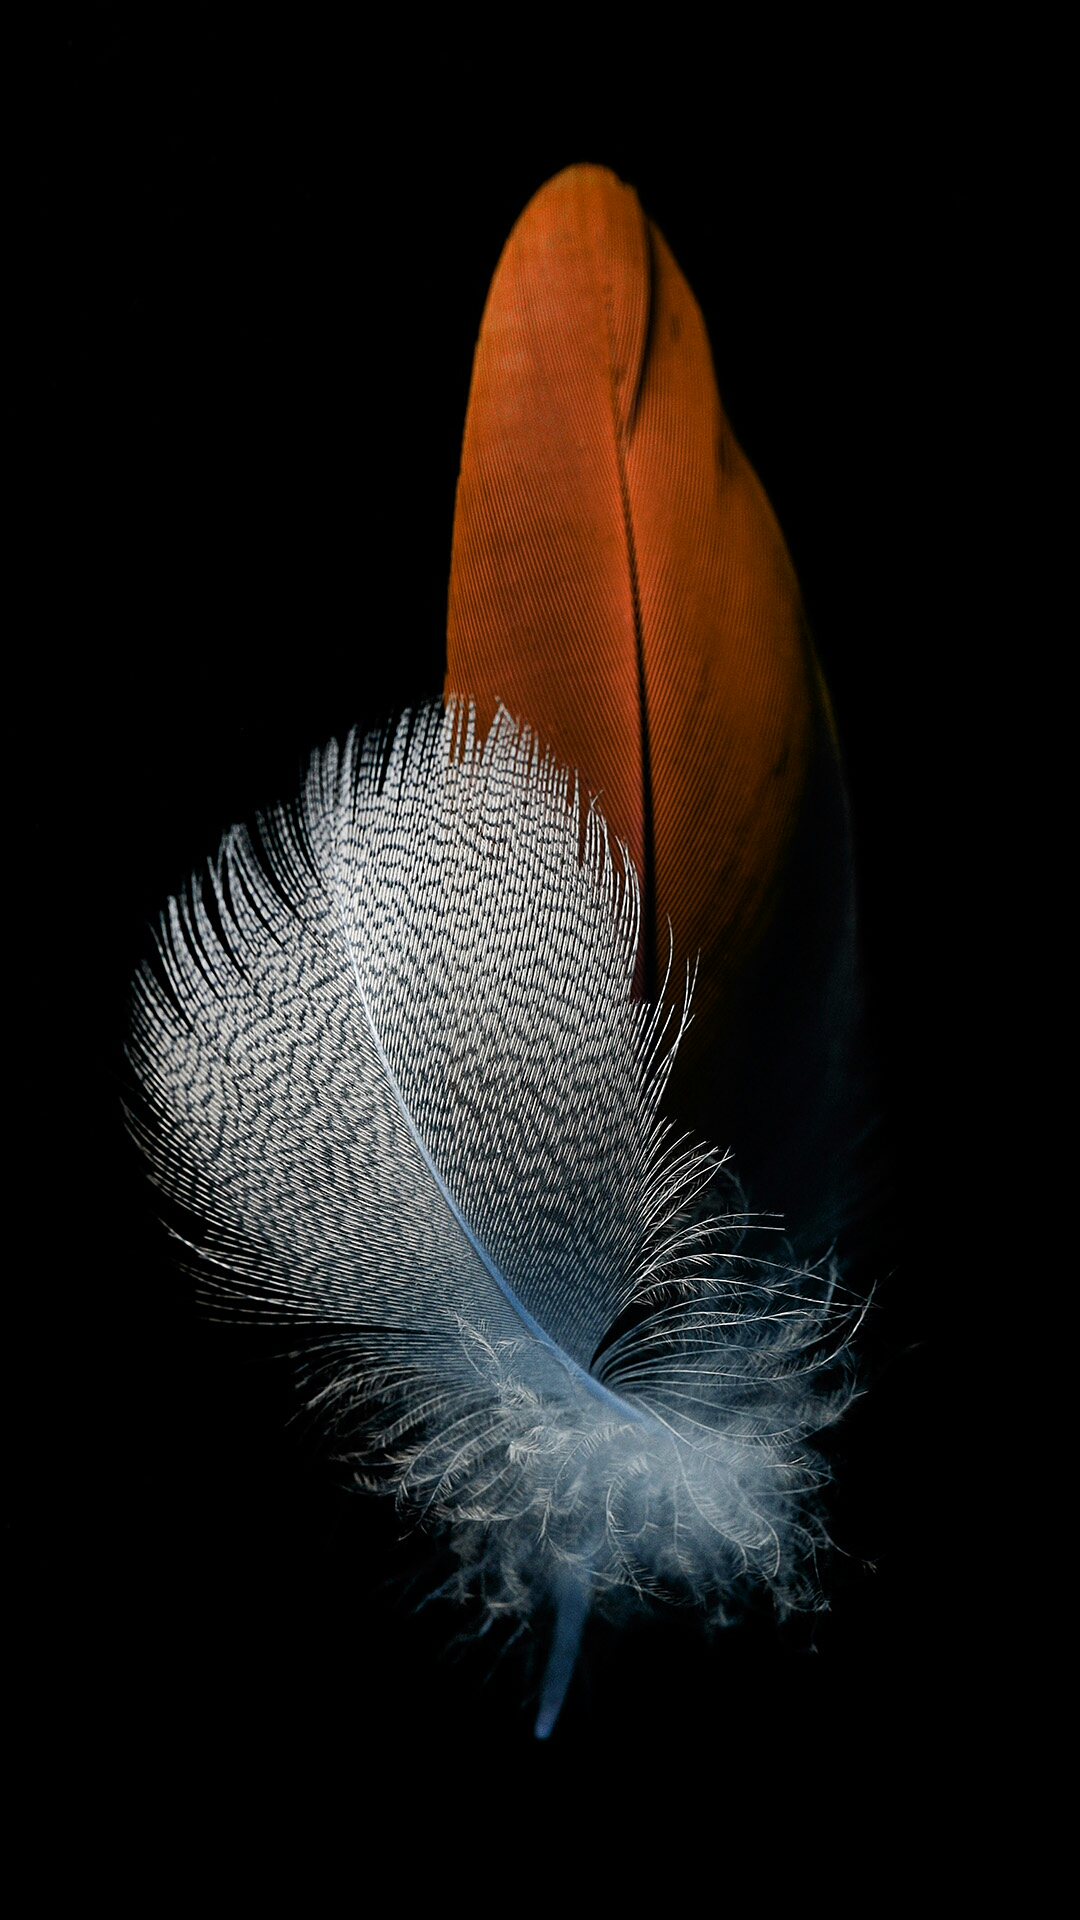 Huawei P8 Lite 2017 Wallpapers: Huawei P8 Lite Feather Wallpapers